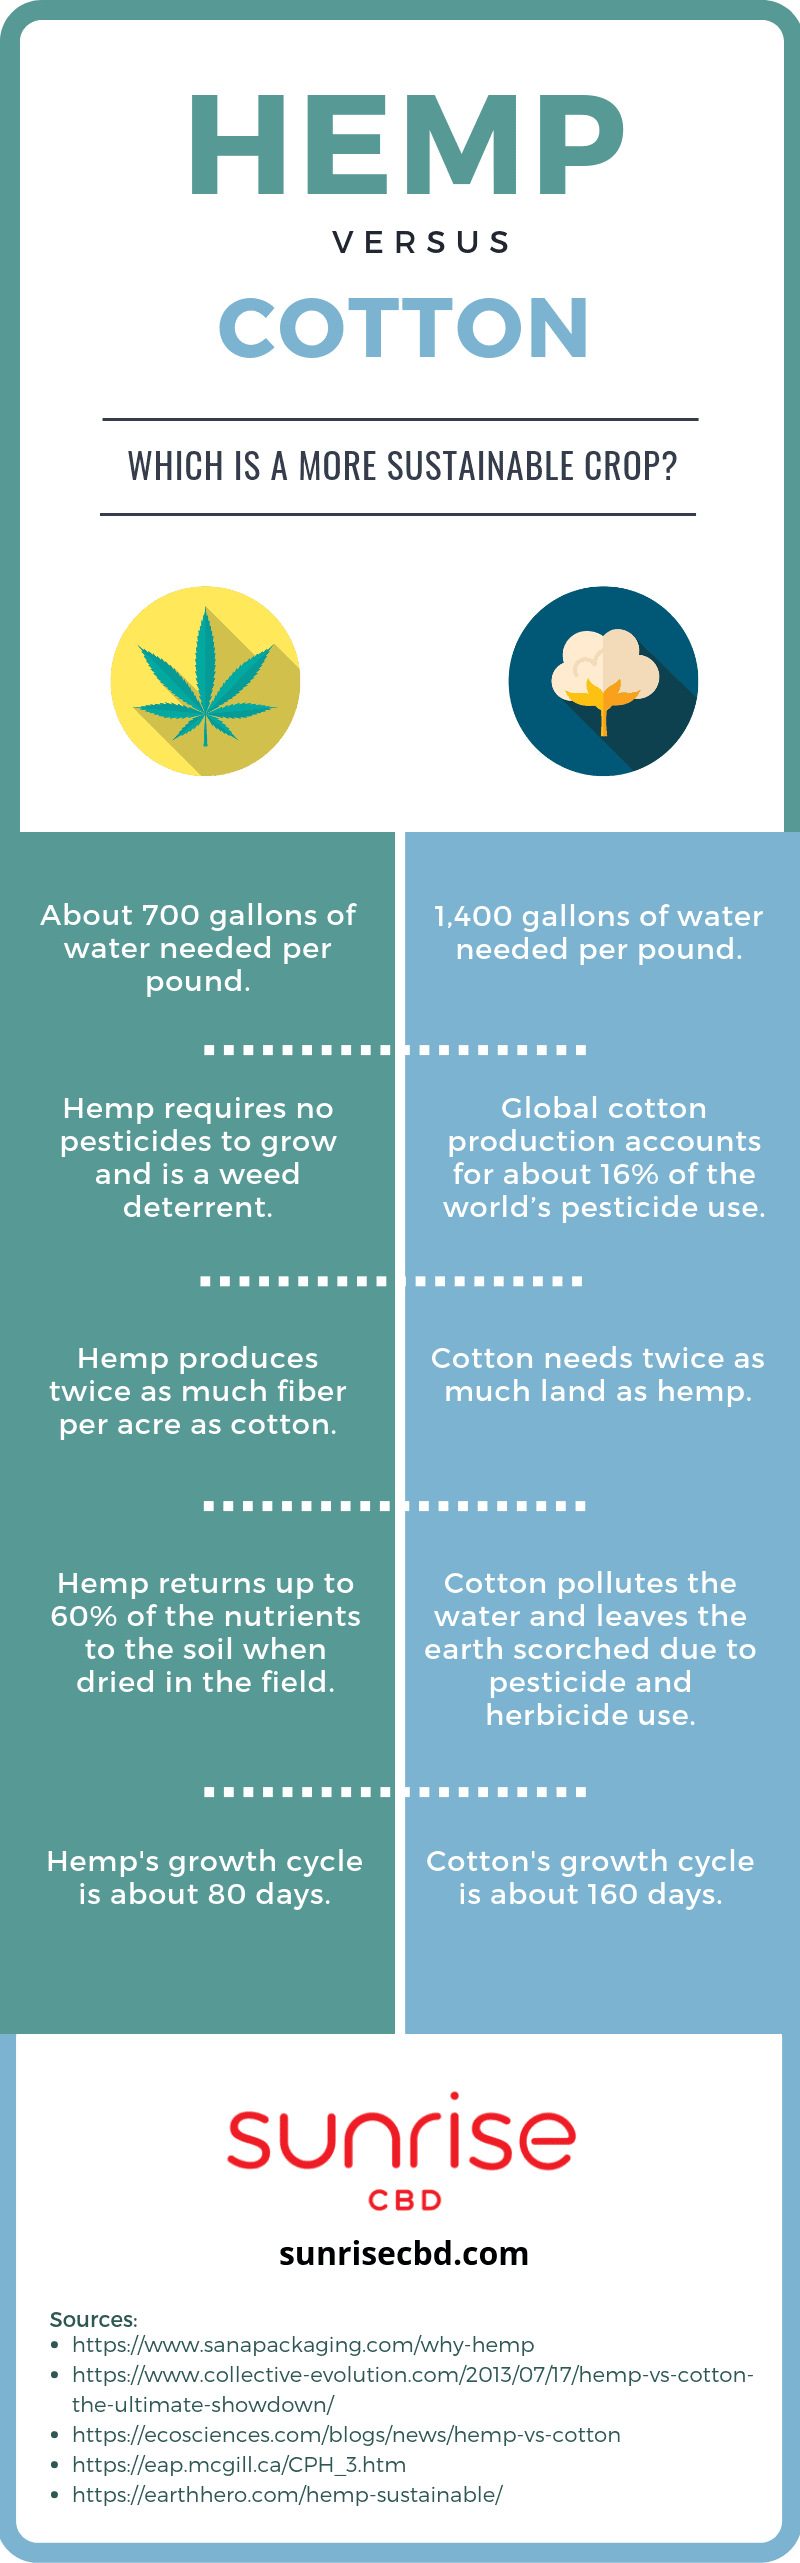 Hemp v. cotton sustainability infographic